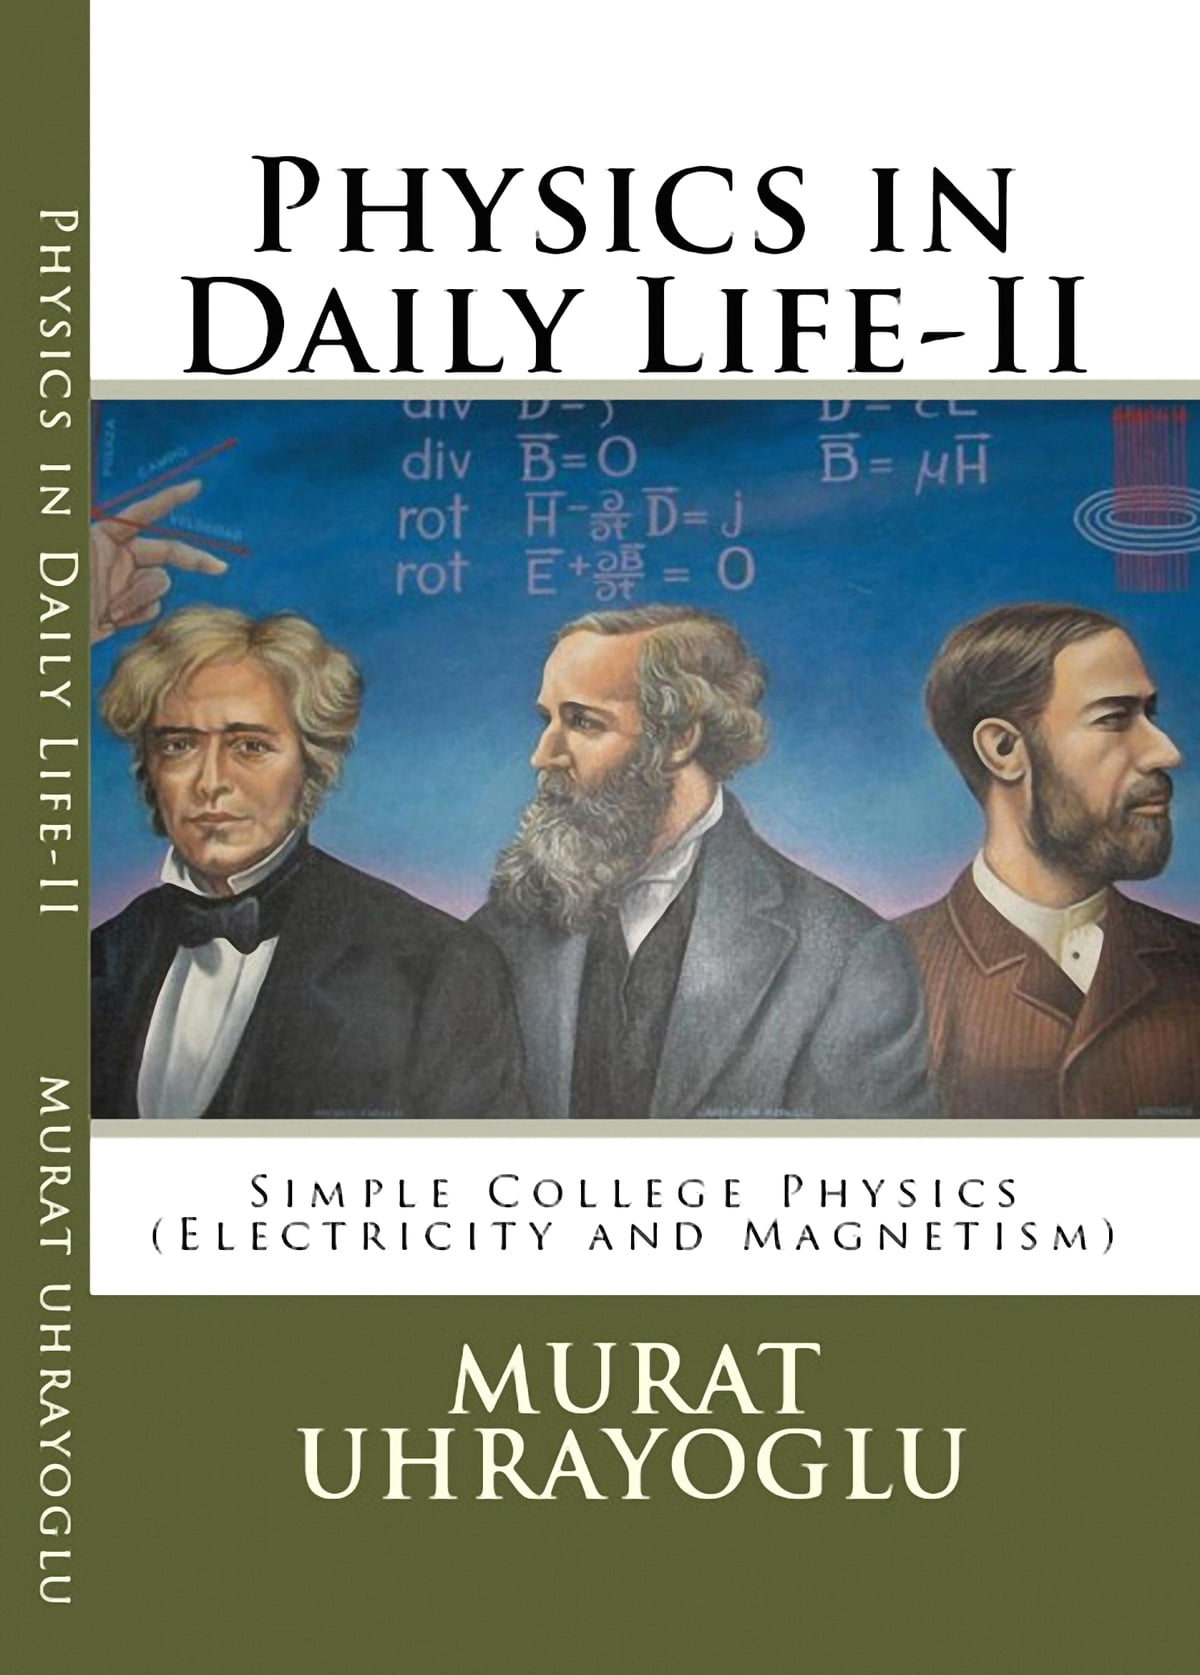 Physics in Daily Life & Simple College Physics-II (Electricity and  Magnetism) ebook by Murat Uhrayoglu - Rakuten Kobo